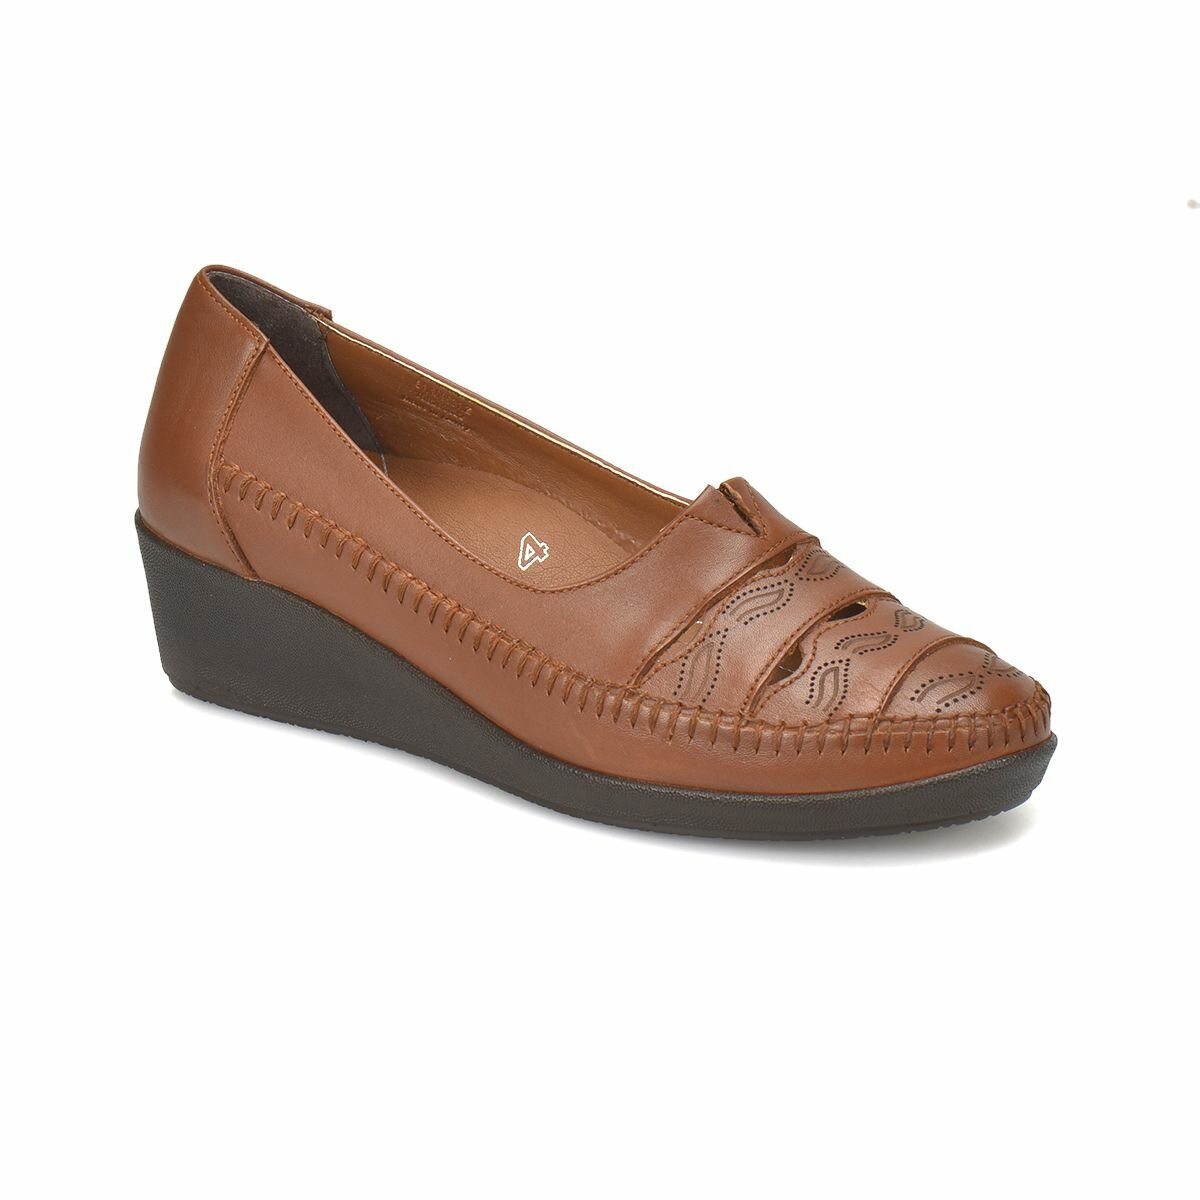 FLO 81.109631.Z Tan Women 'S Wedges Shoes Polaris 5 Point